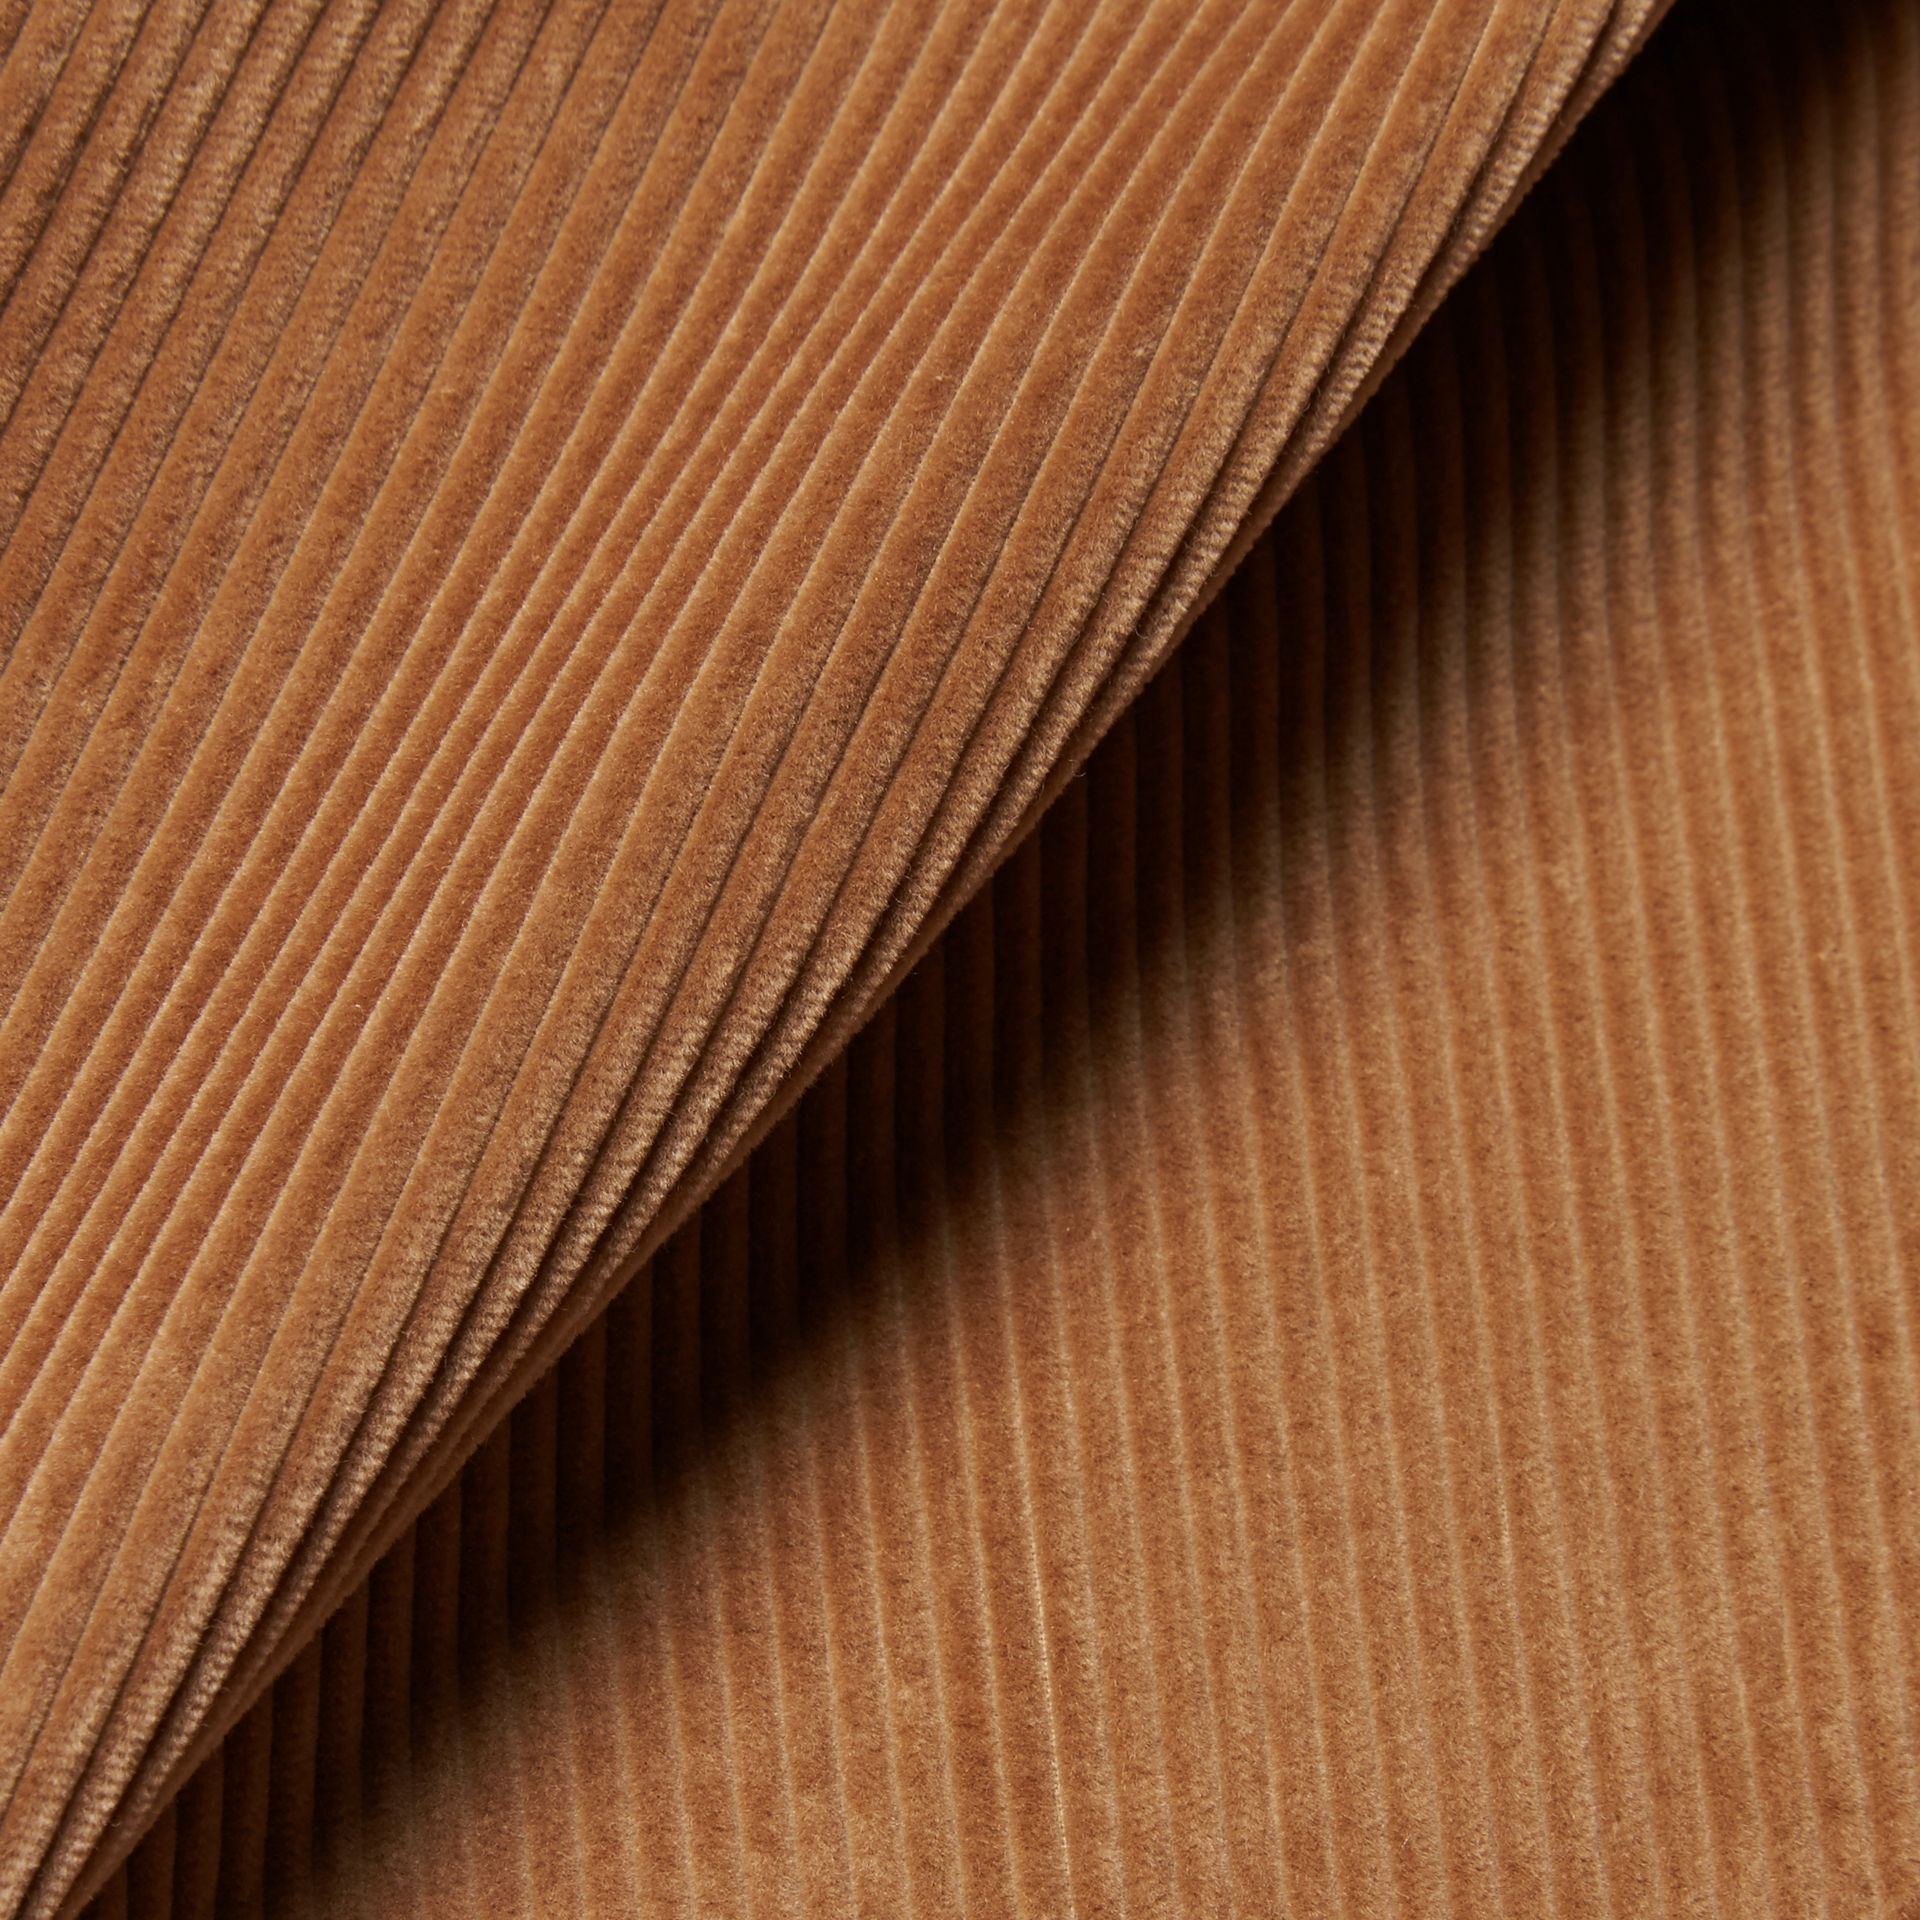 Camel Slim Fit Cotton Corduroy Trousers Camel - gallery image 2